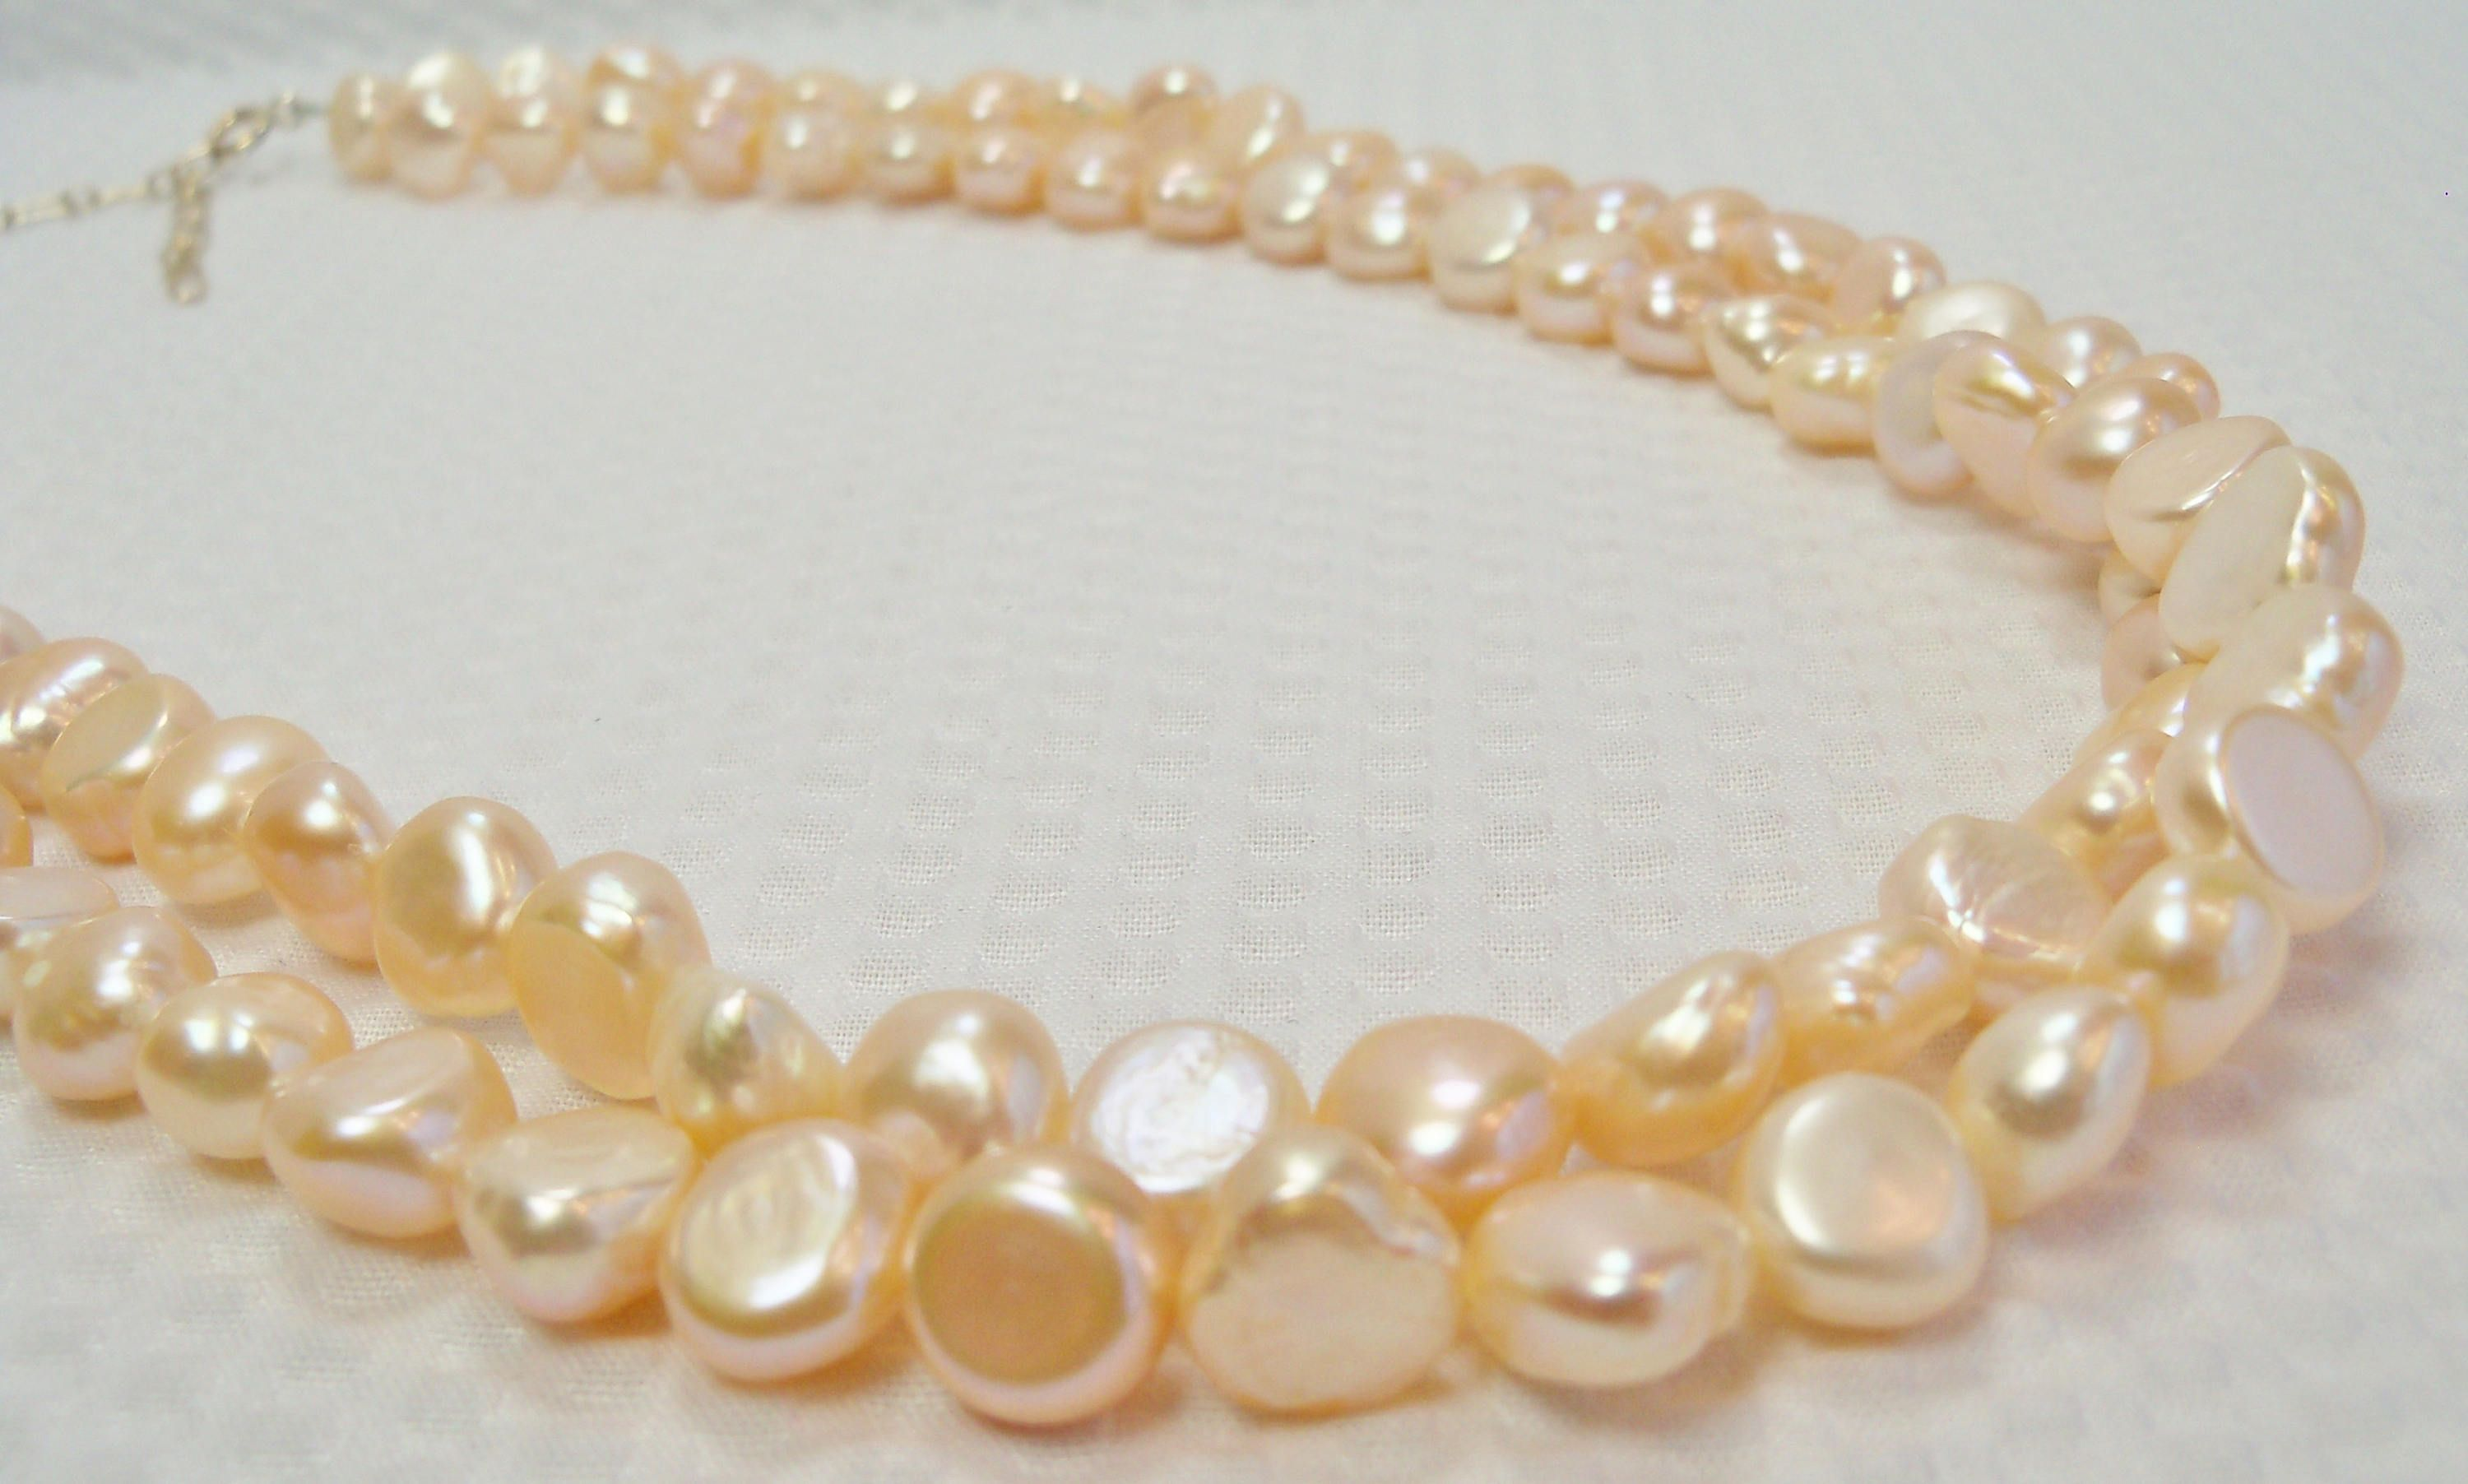 pinkpeachn peach pearls products glass pink prl czech round color imitation pearl